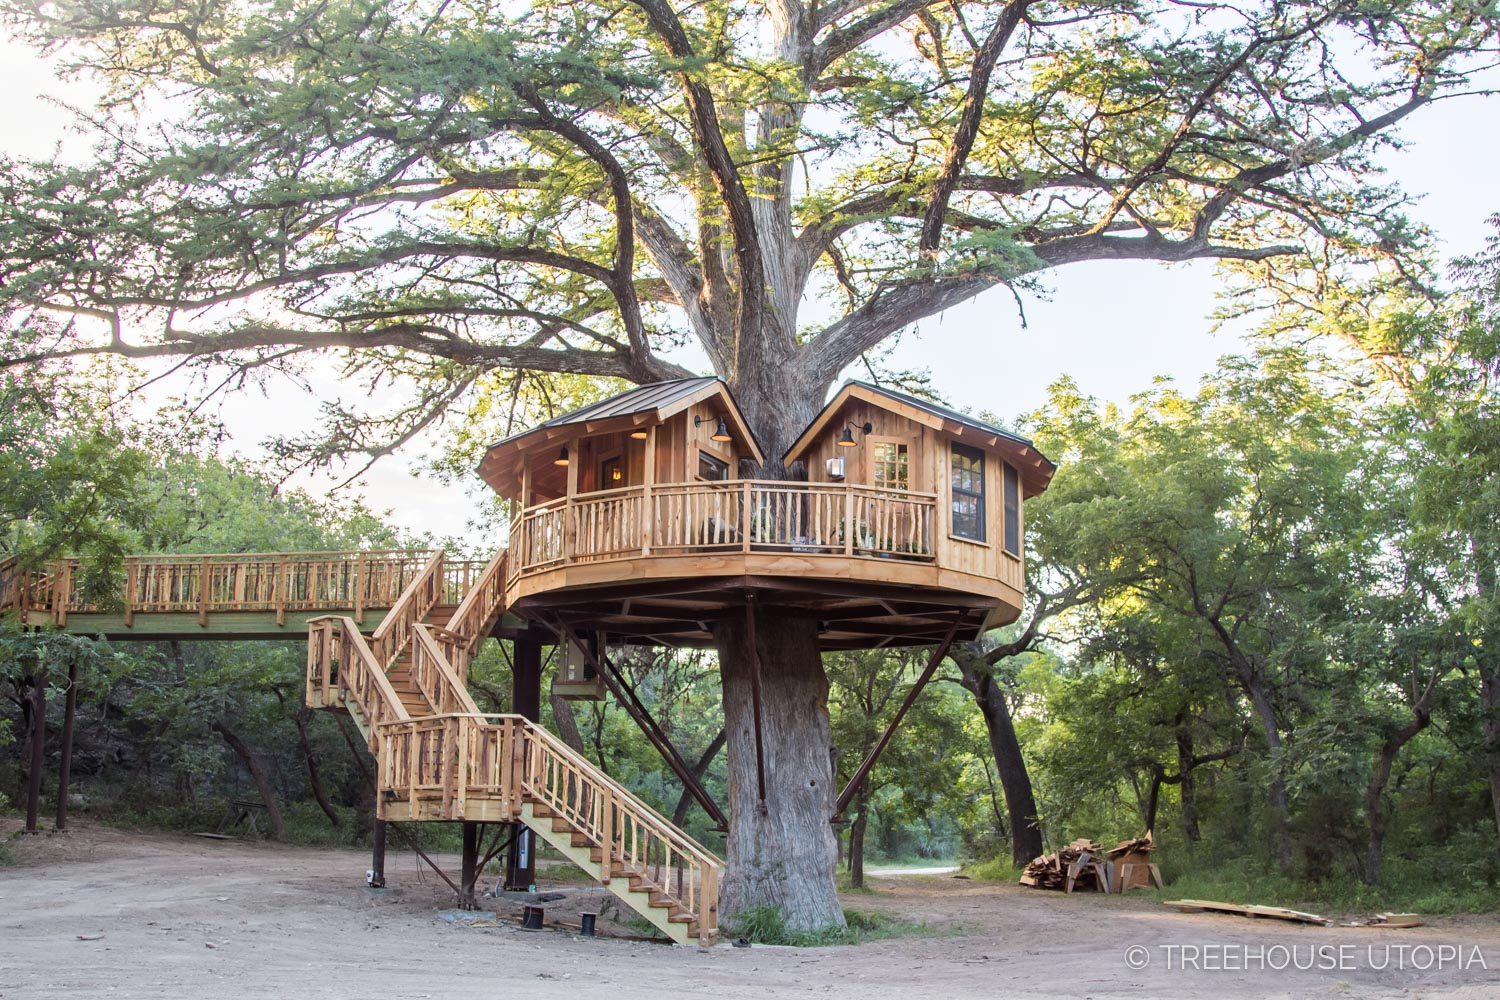 Biblioteque At Treehouse Utopia A Texas Hill Country